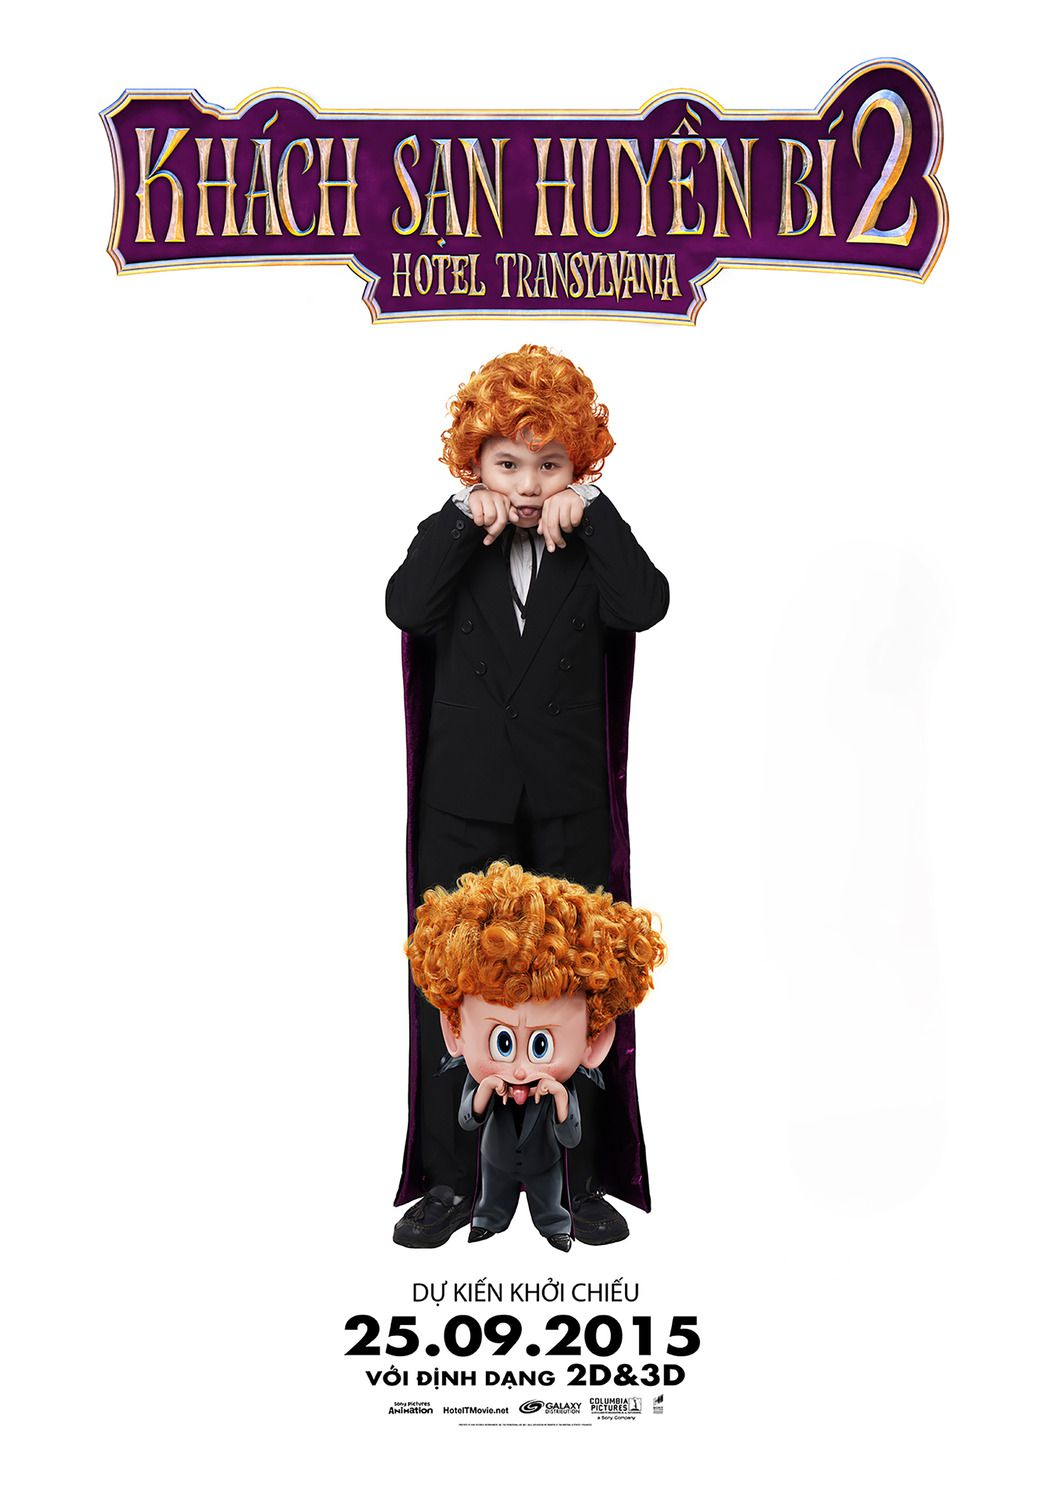 Hotel Transylvania (live action) Red Hair little Boy